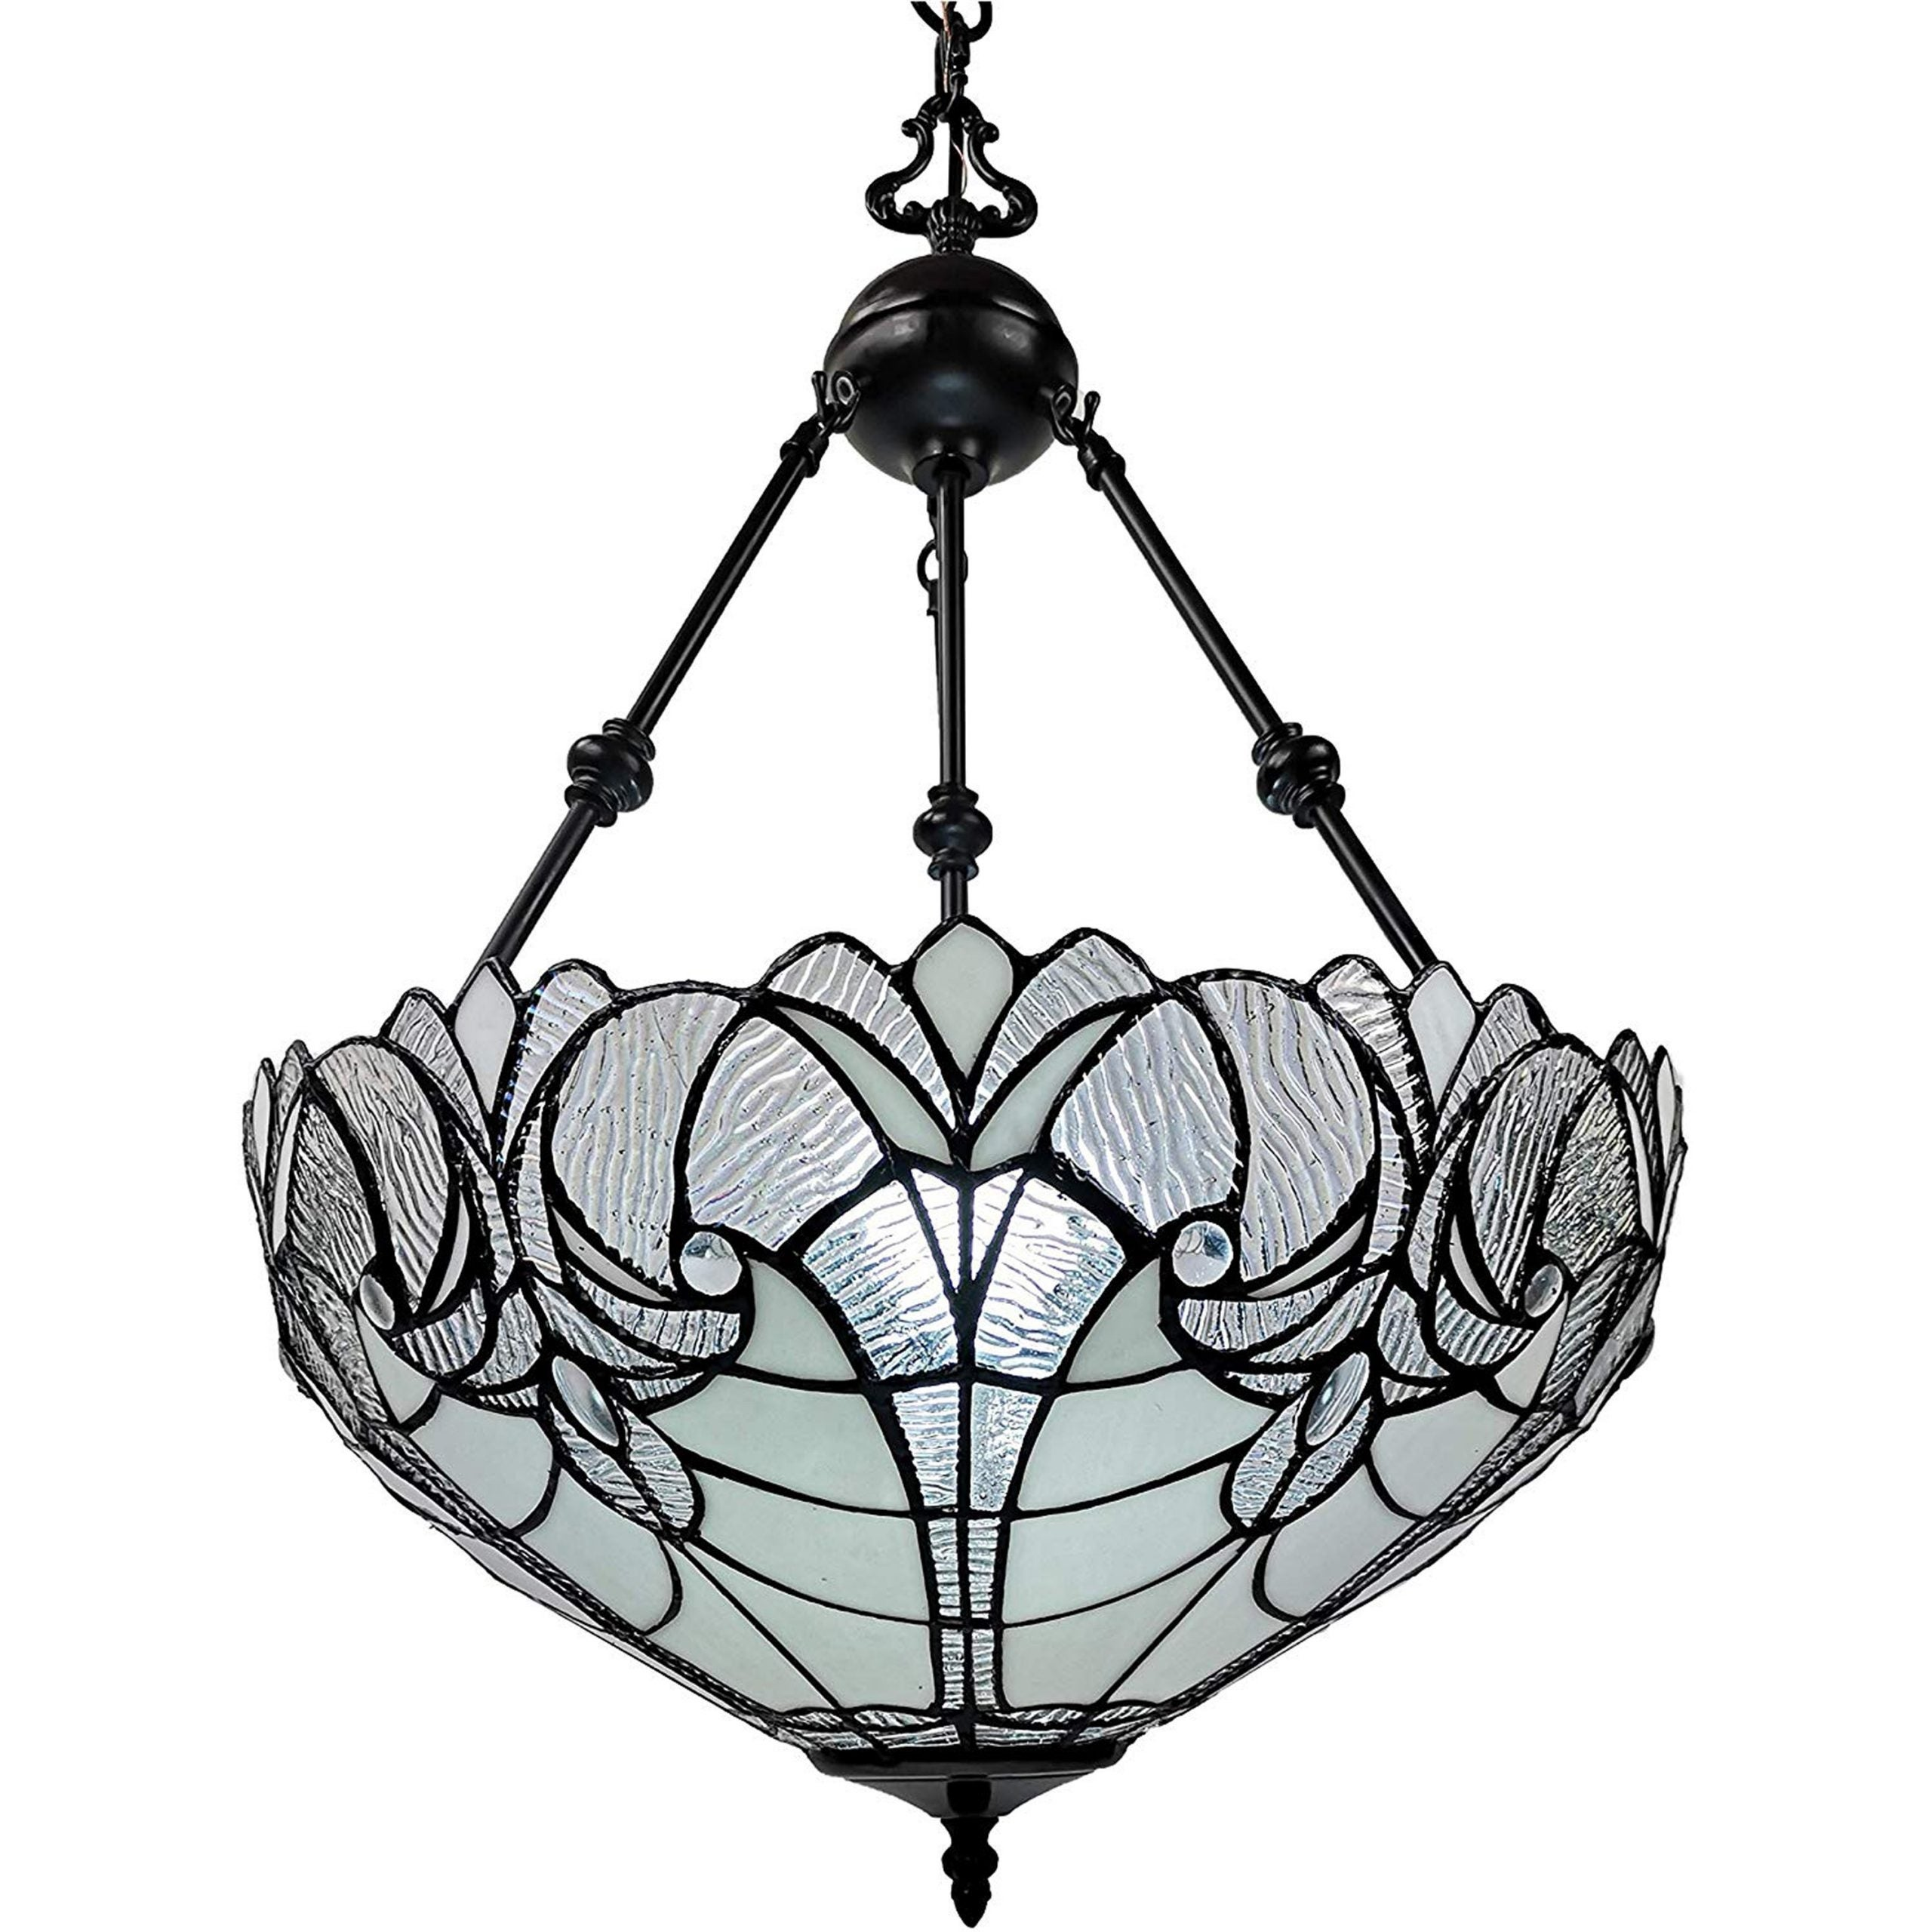 Shop Black Friday Deals On Tiffany Style Hanging Pendant Lamp 18 In Wide Am263hl18b Amora Lighting Overstock 13262399 Clear White